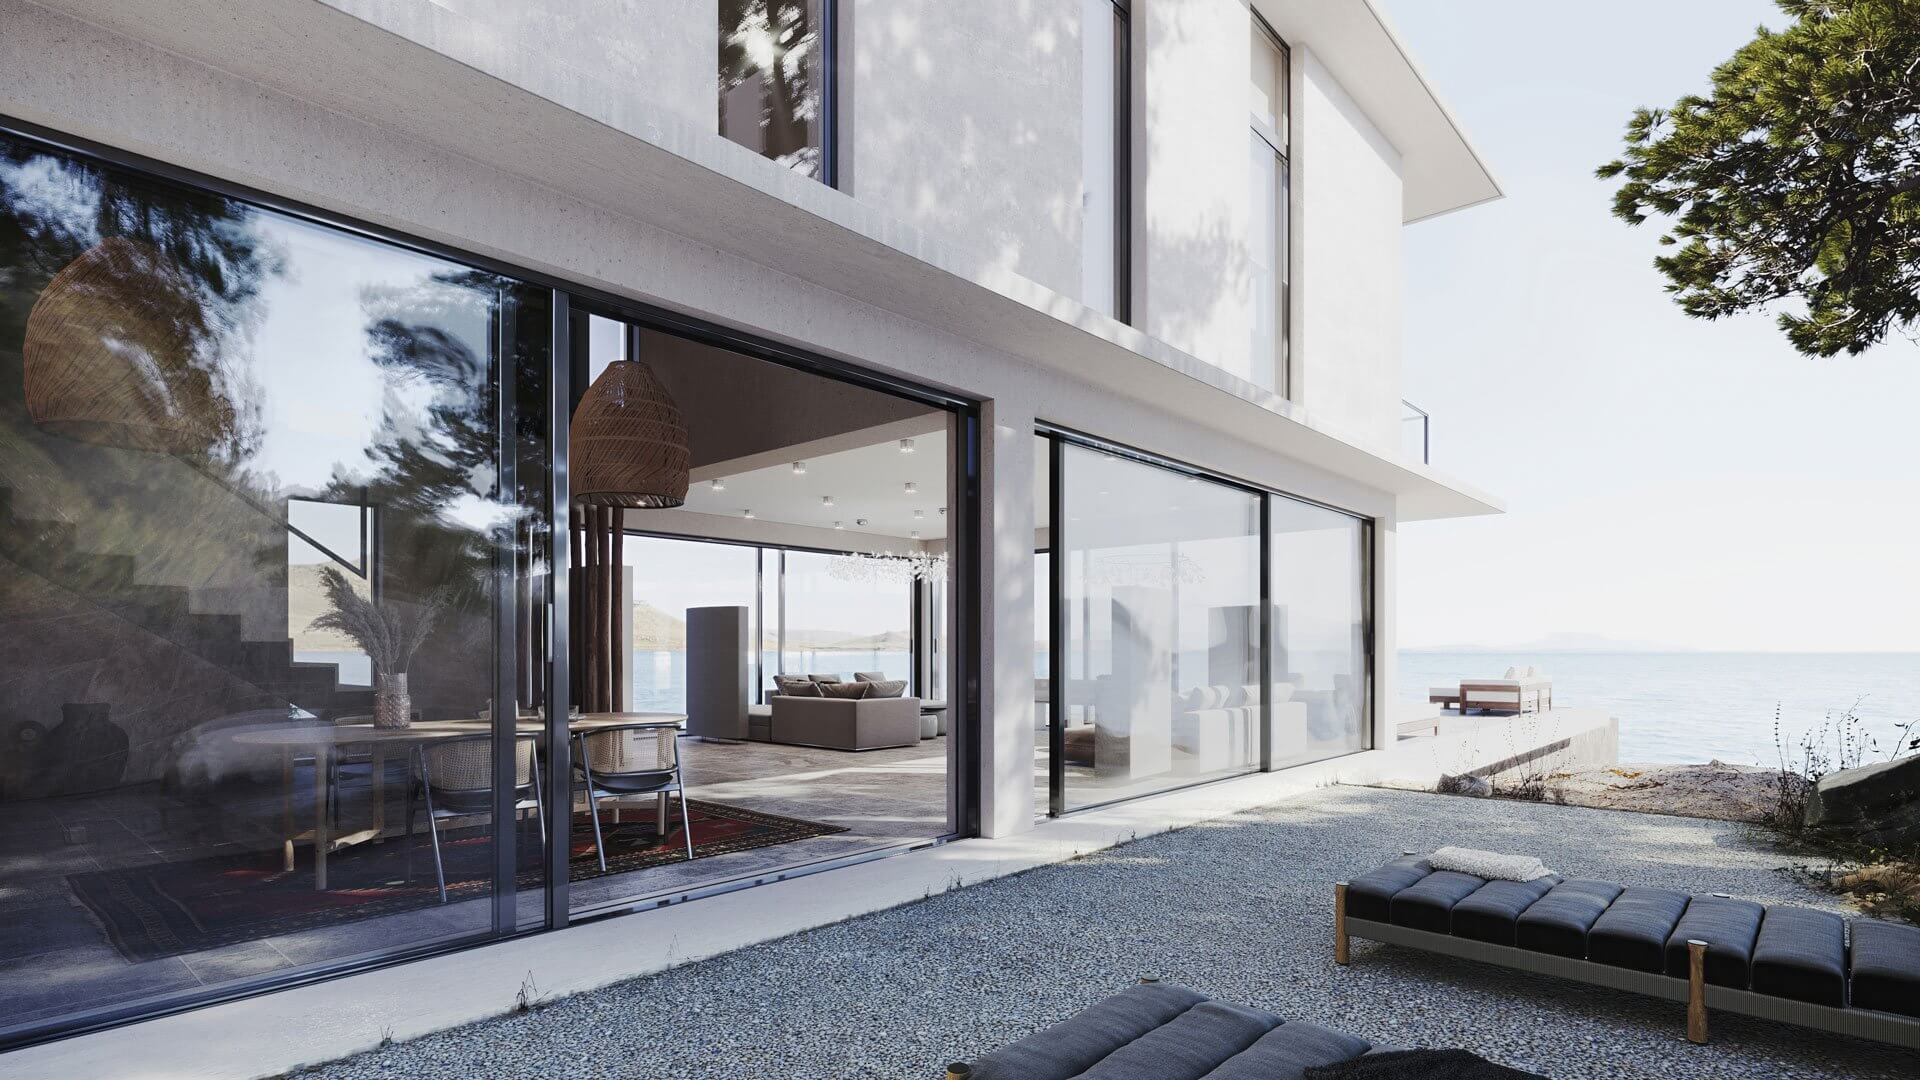 Photoreal Rendering Of A Southern Villa By A Seashore